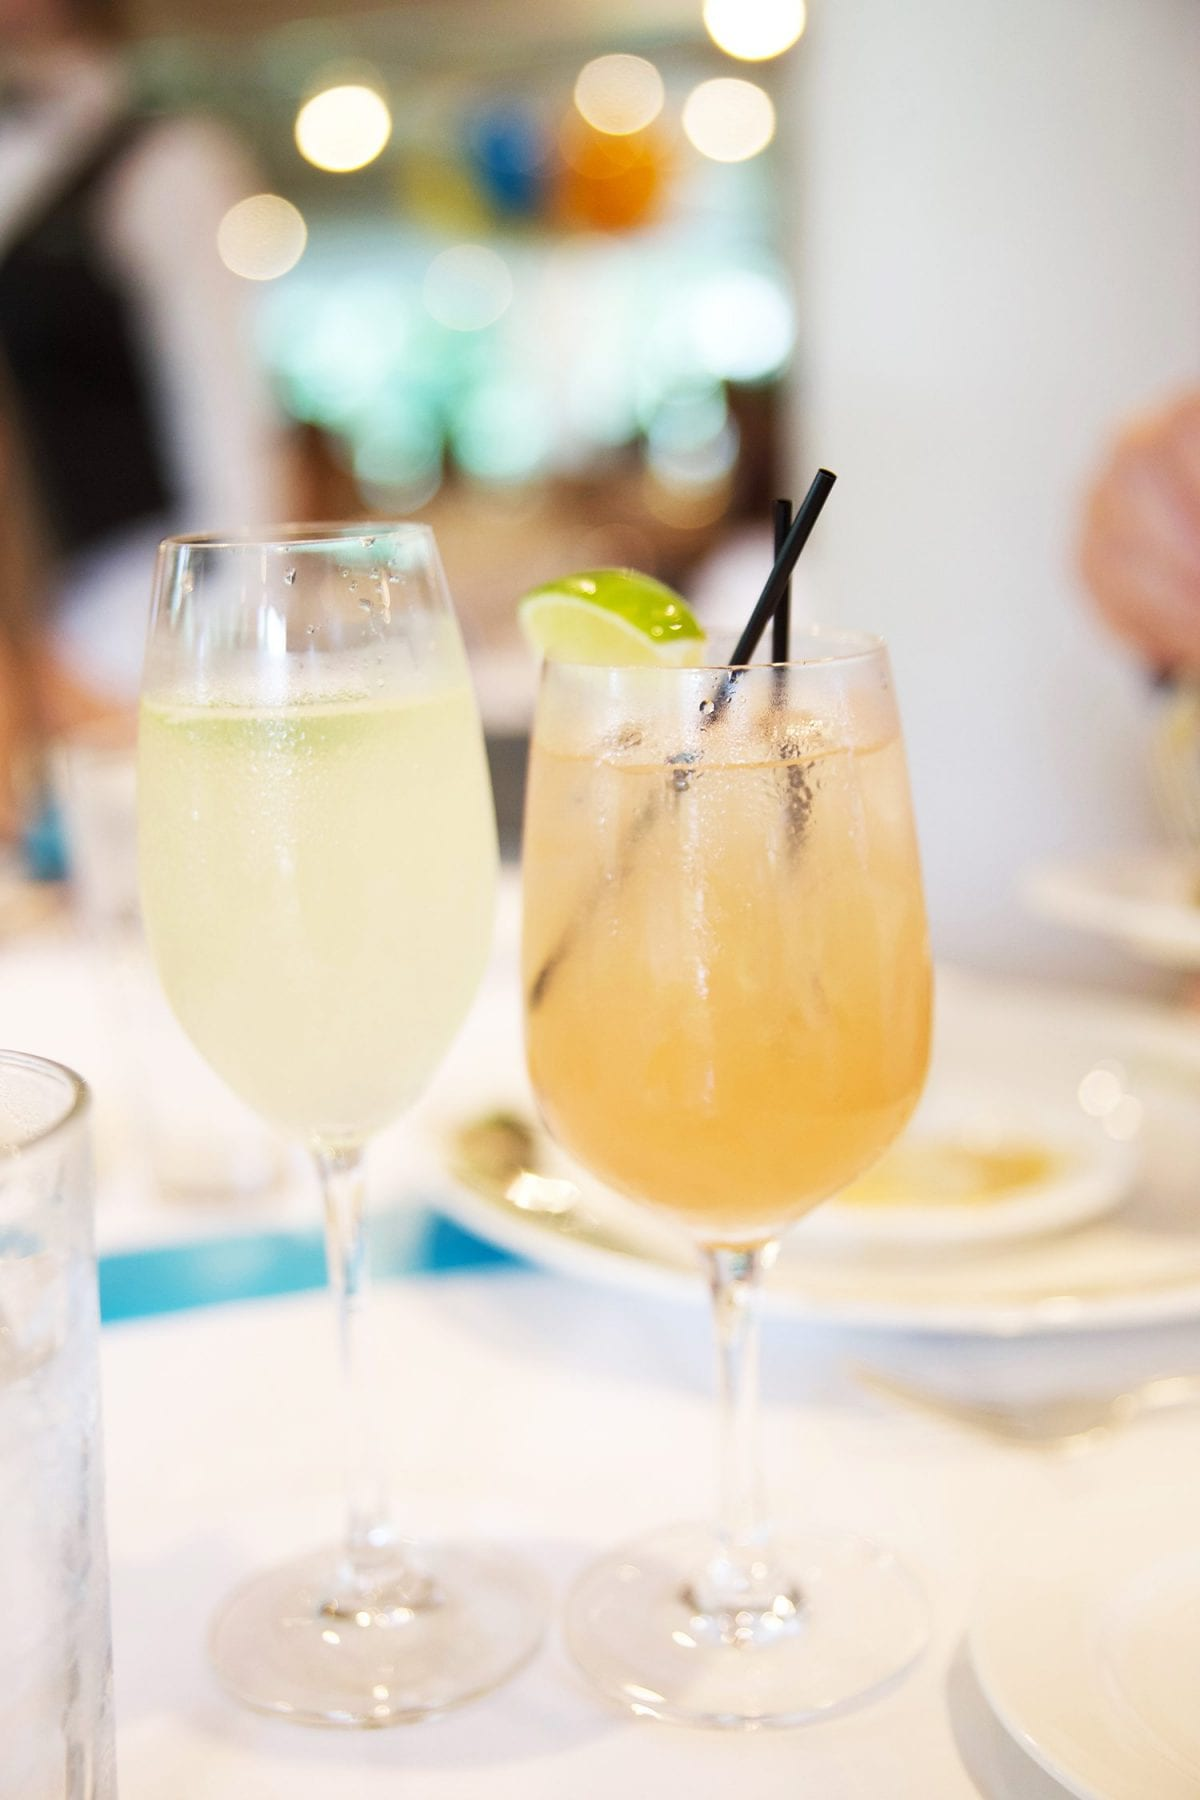 Places to eat in New Orleans - drink